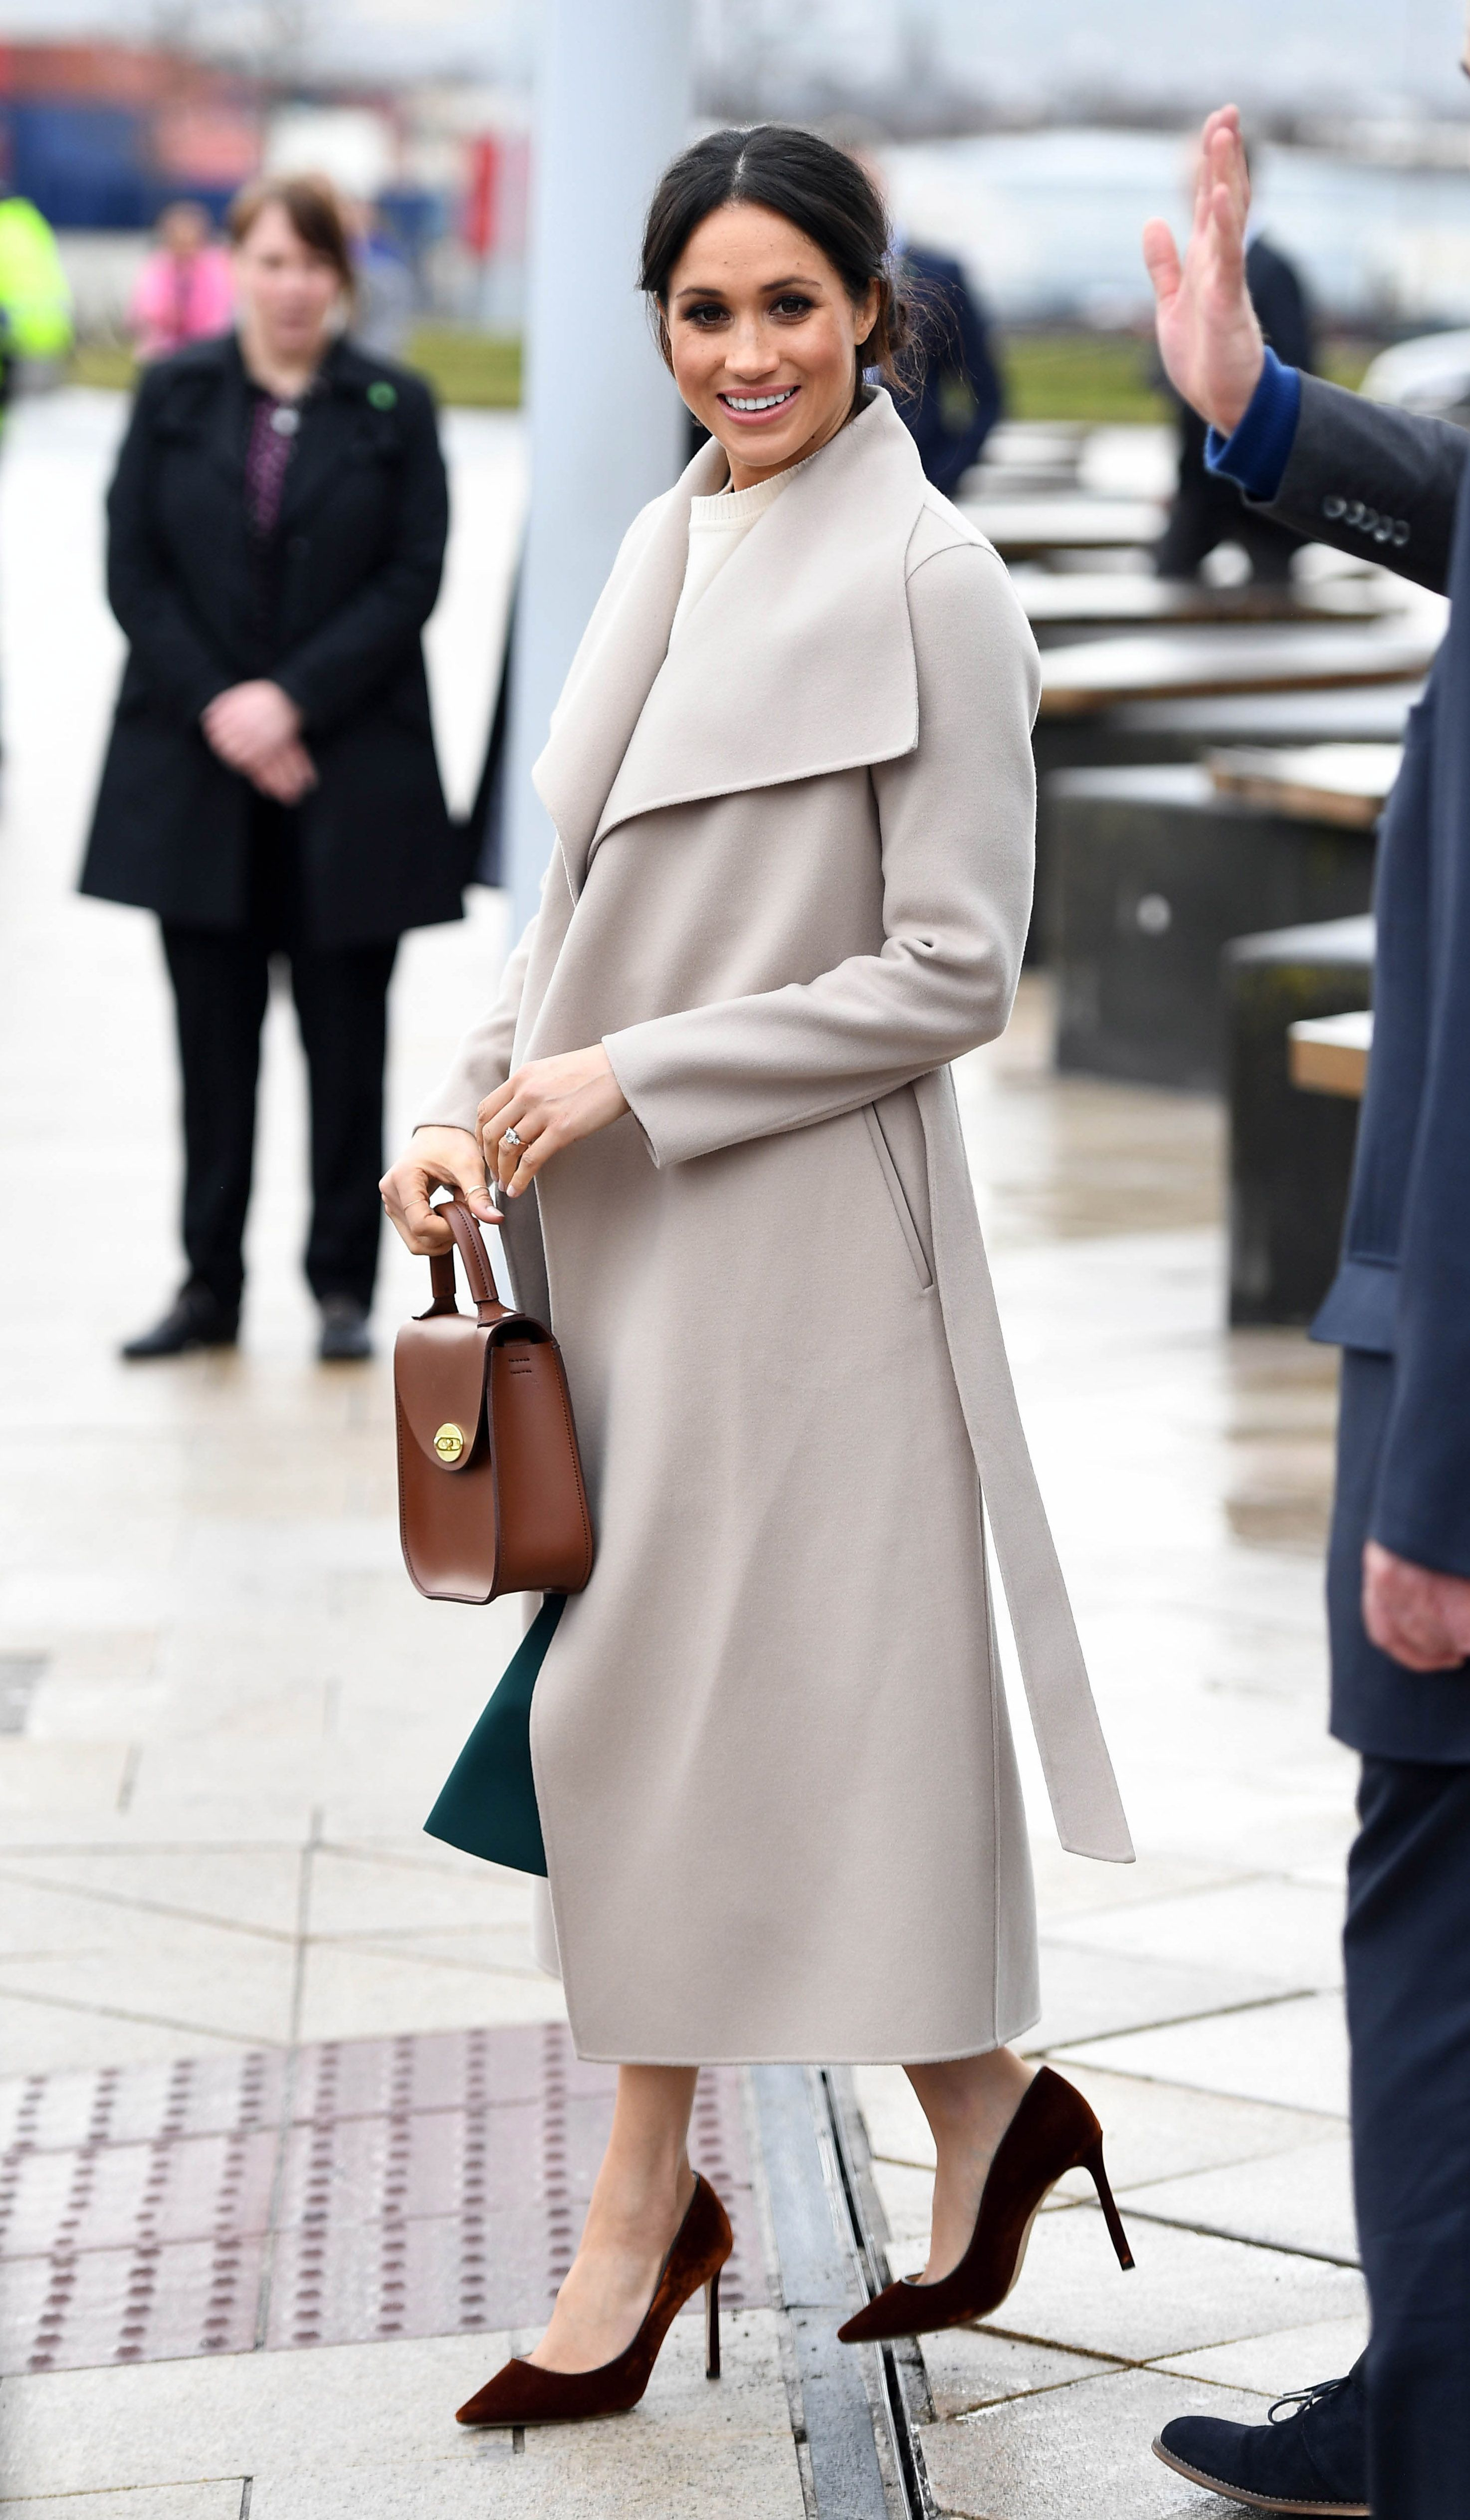 The Coat Styles Meghan Markle Wears the Most